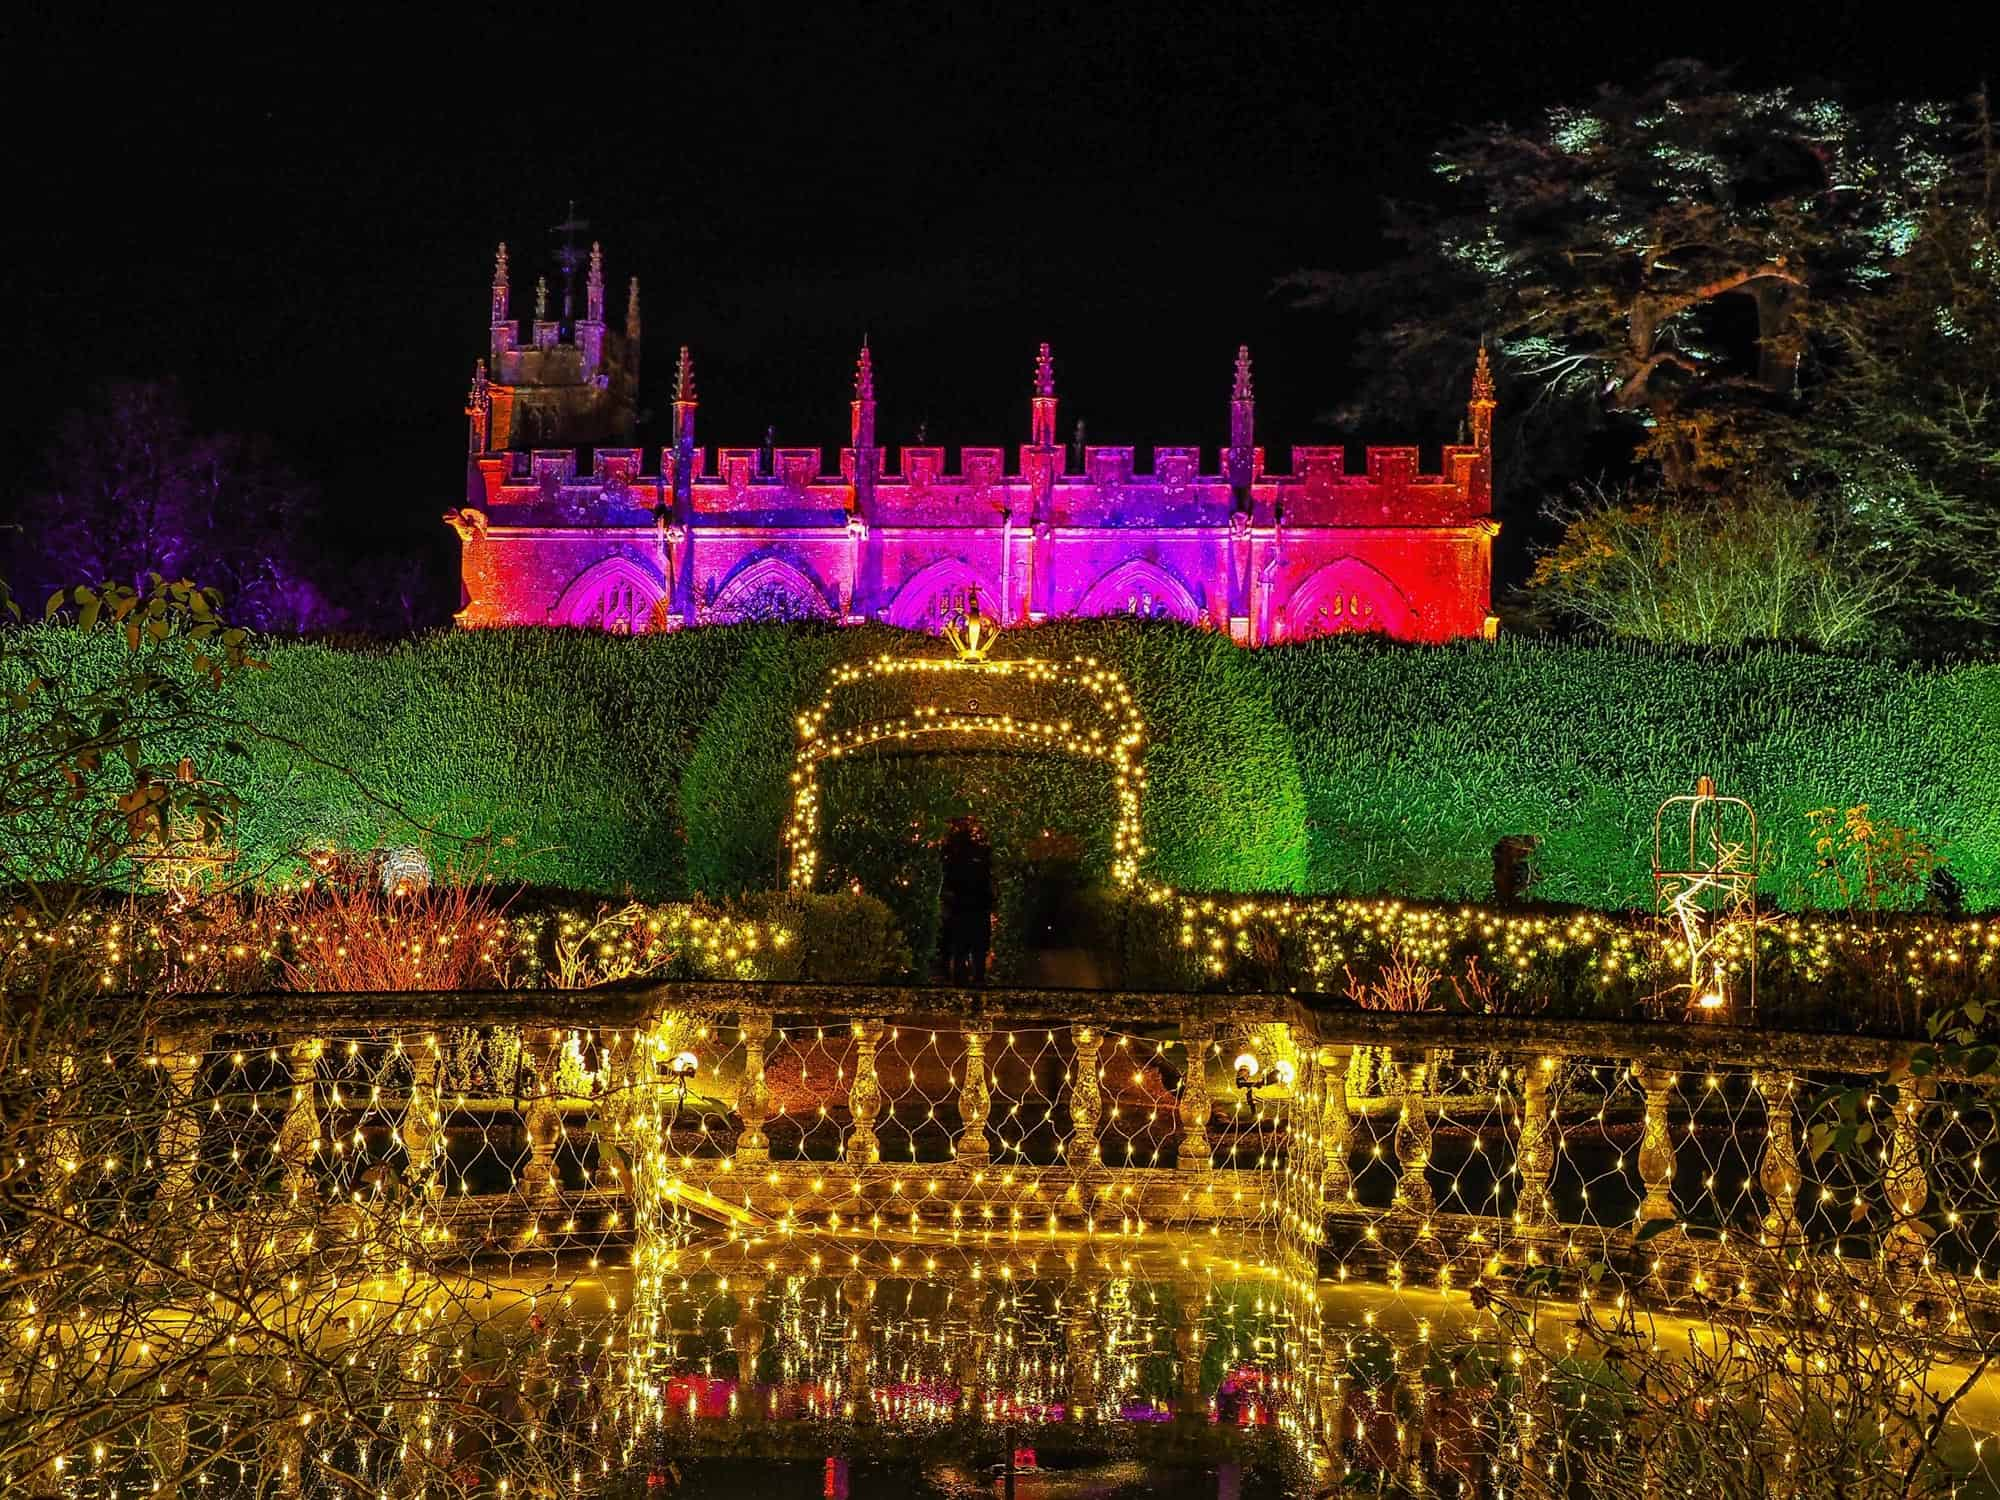 2017 Sudeley Castle Spectacle of Light Photo Gallery 30